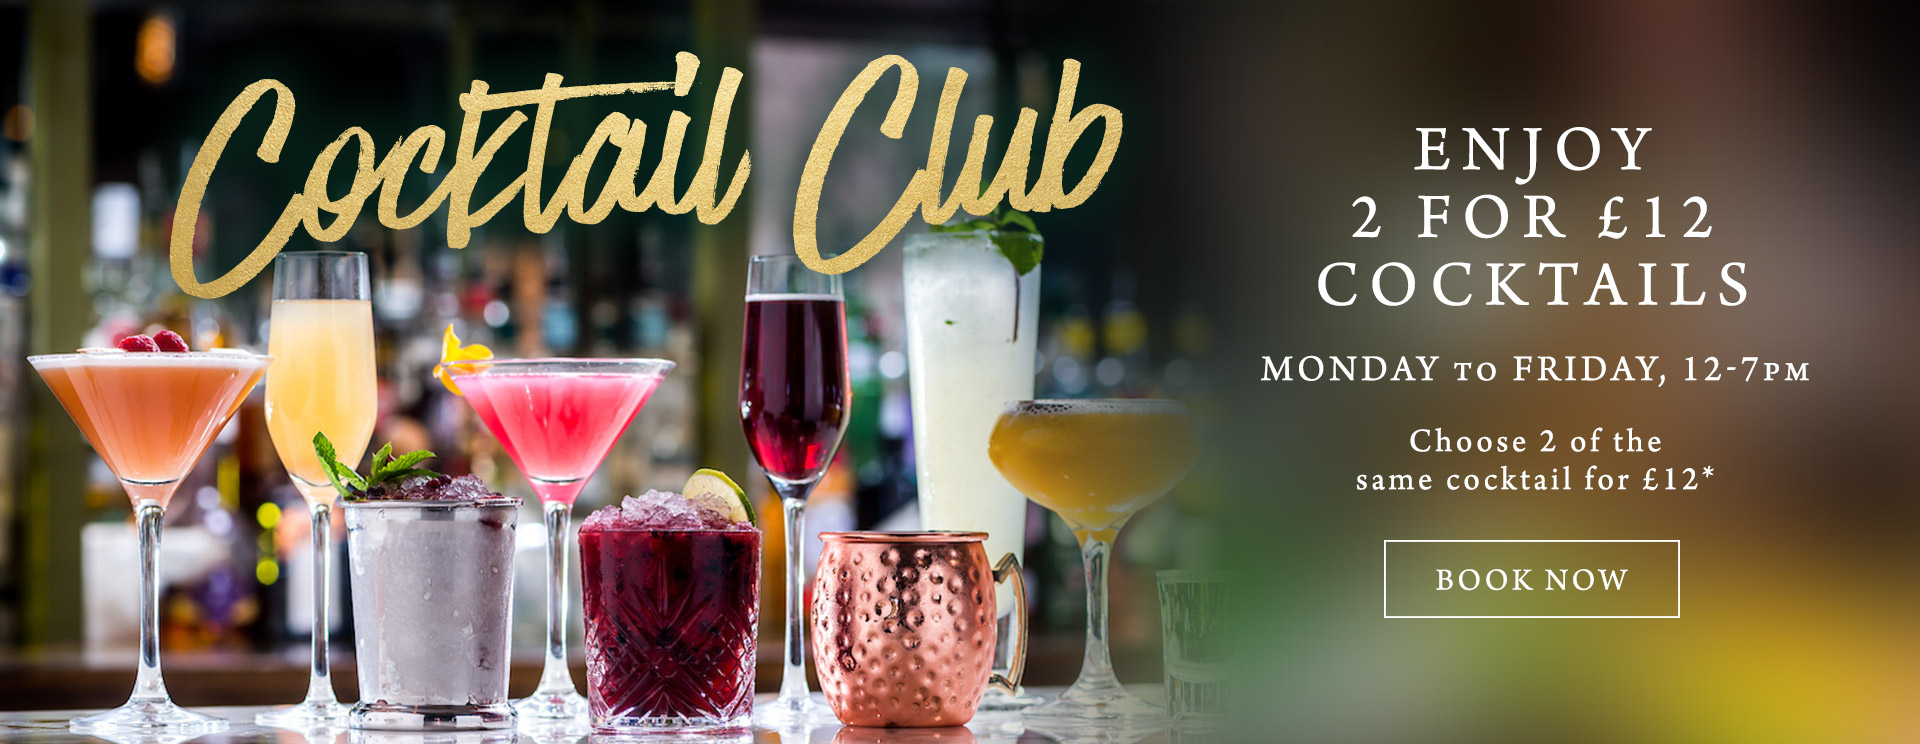 2 for £12 cocktails at The Pine Marten